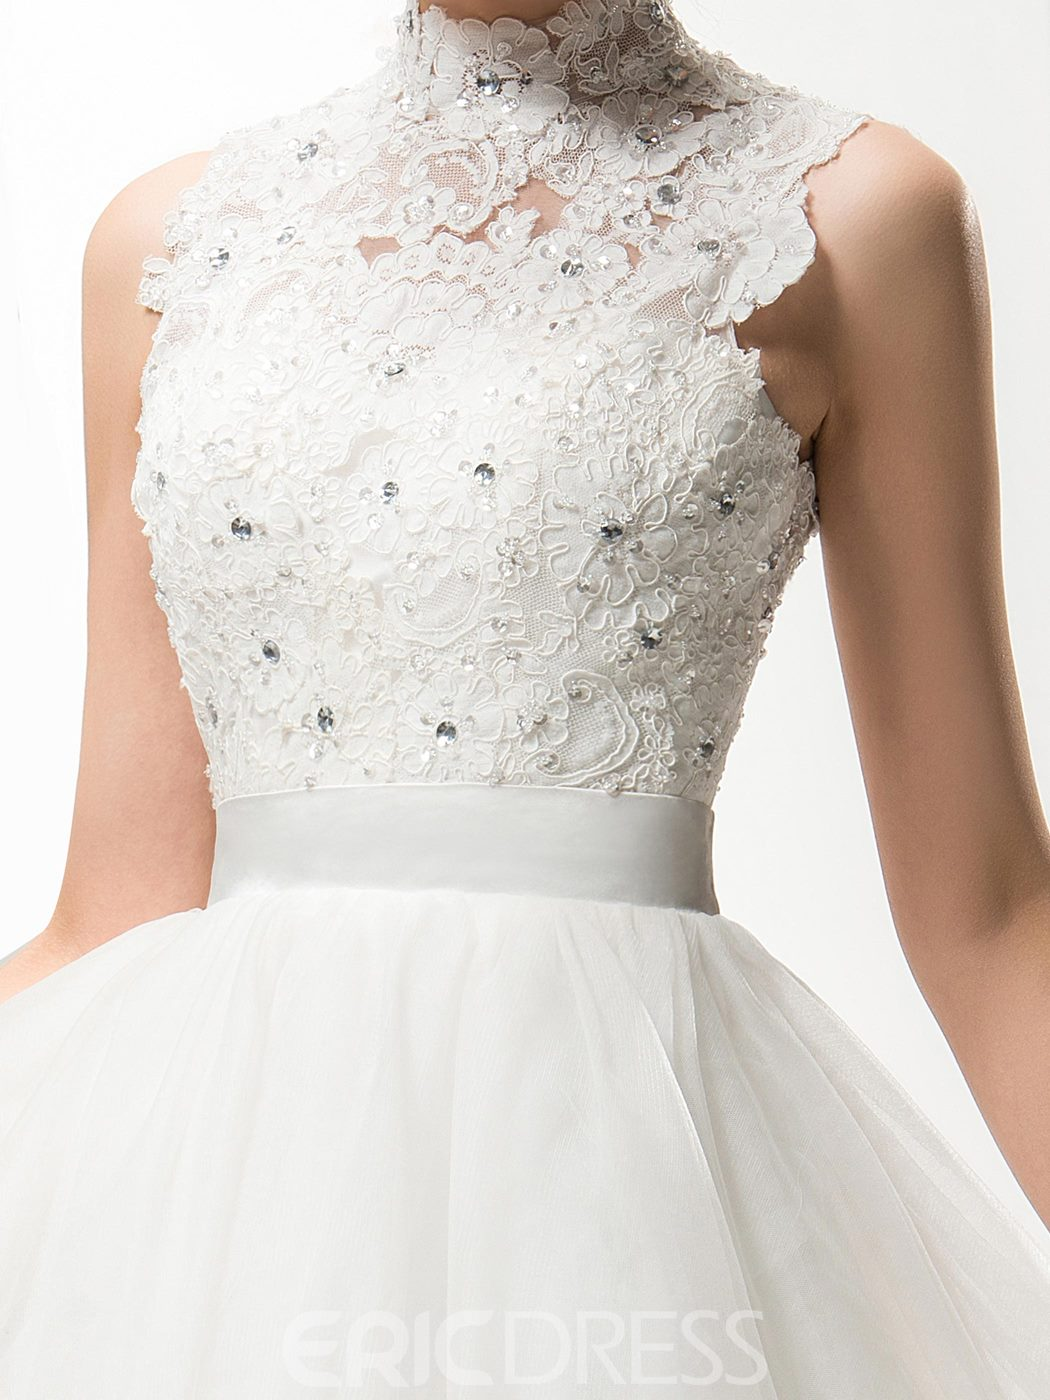 Comely A-Line High Neck Appliques Short Charming Wedding Dress